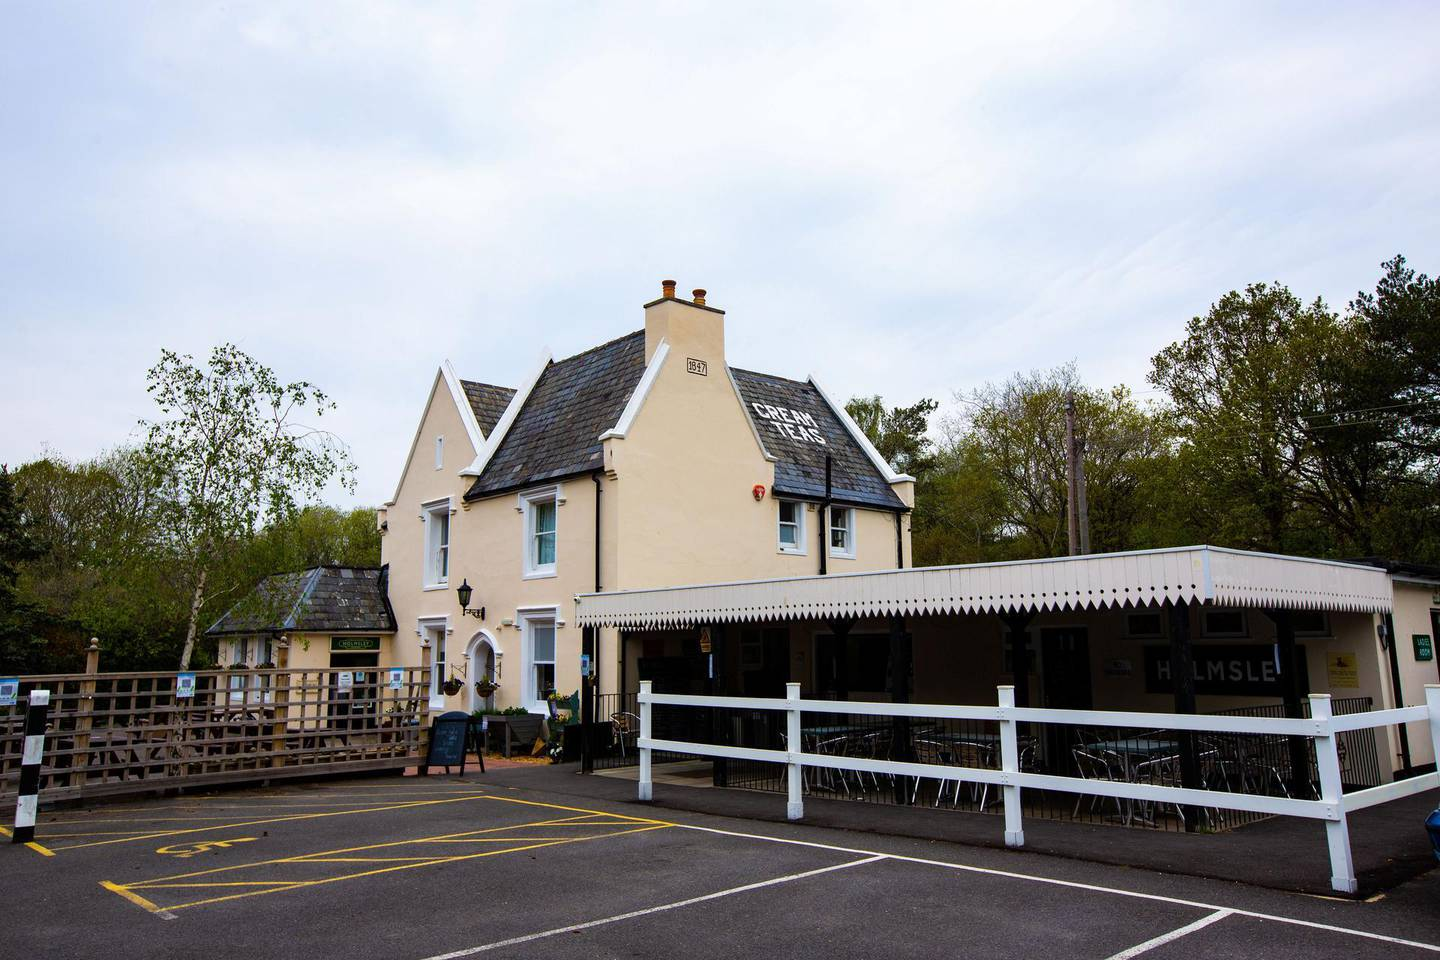 Paul Peachey feature on reinstating old railway lines, including the line the line in the New Forrest near Holmsley. The old station house at Holmsley is now a popular tea house and destination for tourists and day trippers.